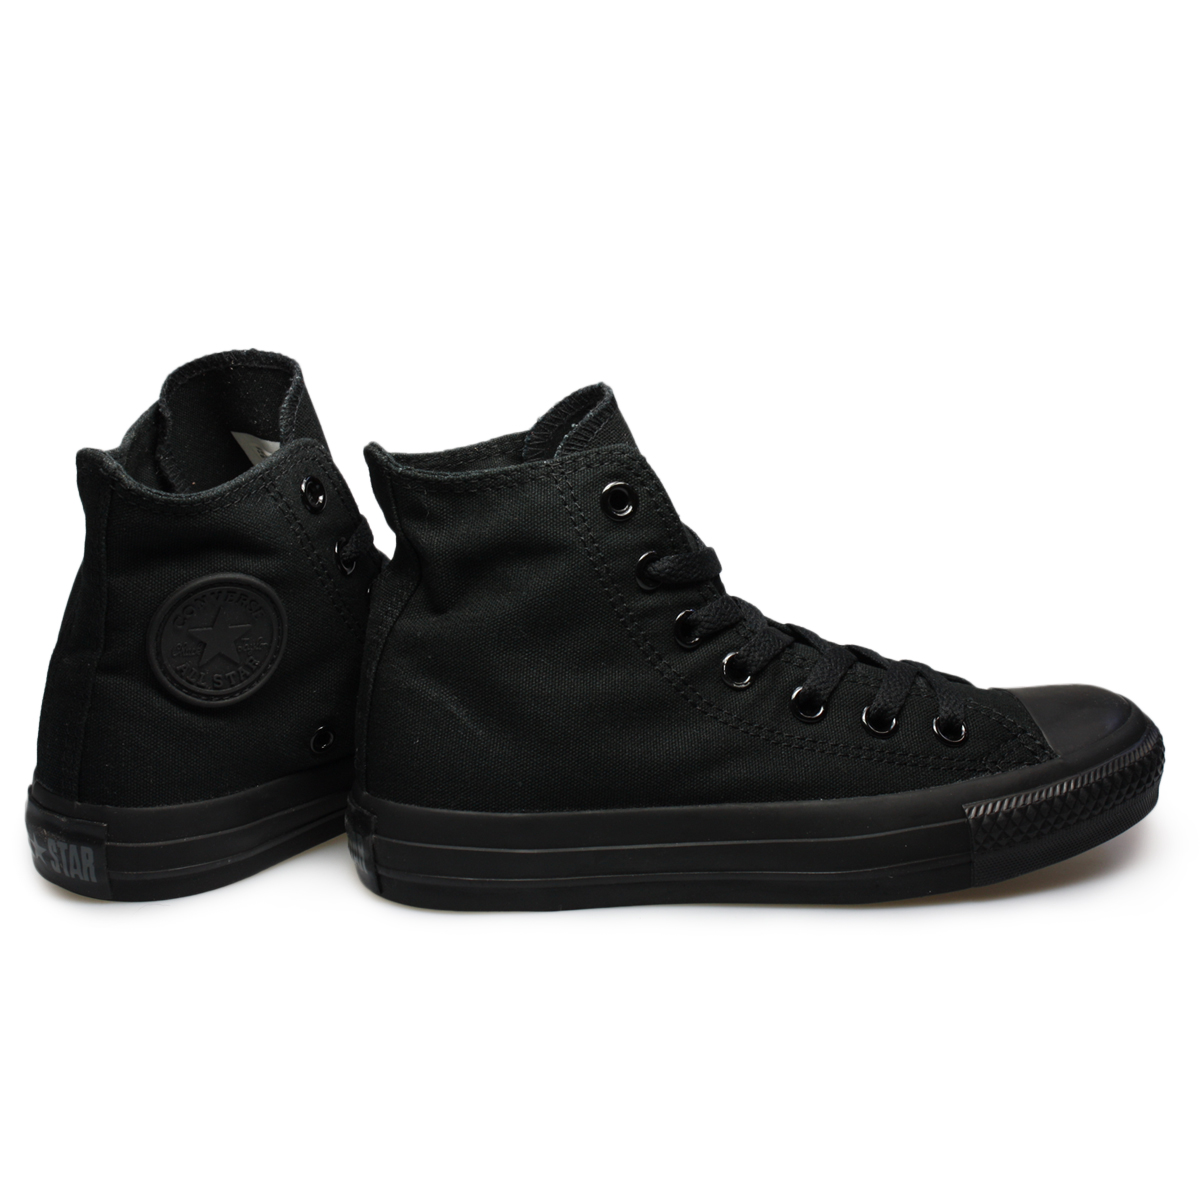 Chuck Taylor All Star Classic Colour High Top Black. $ 7 Colours. More Colours. Chuck Taylor All Star Classic Colour High Top White. $ 7 Colours. Introducing the Chuck Taylor All Star sneaker range at Converse Australia. Created in , the iconic sneaker .